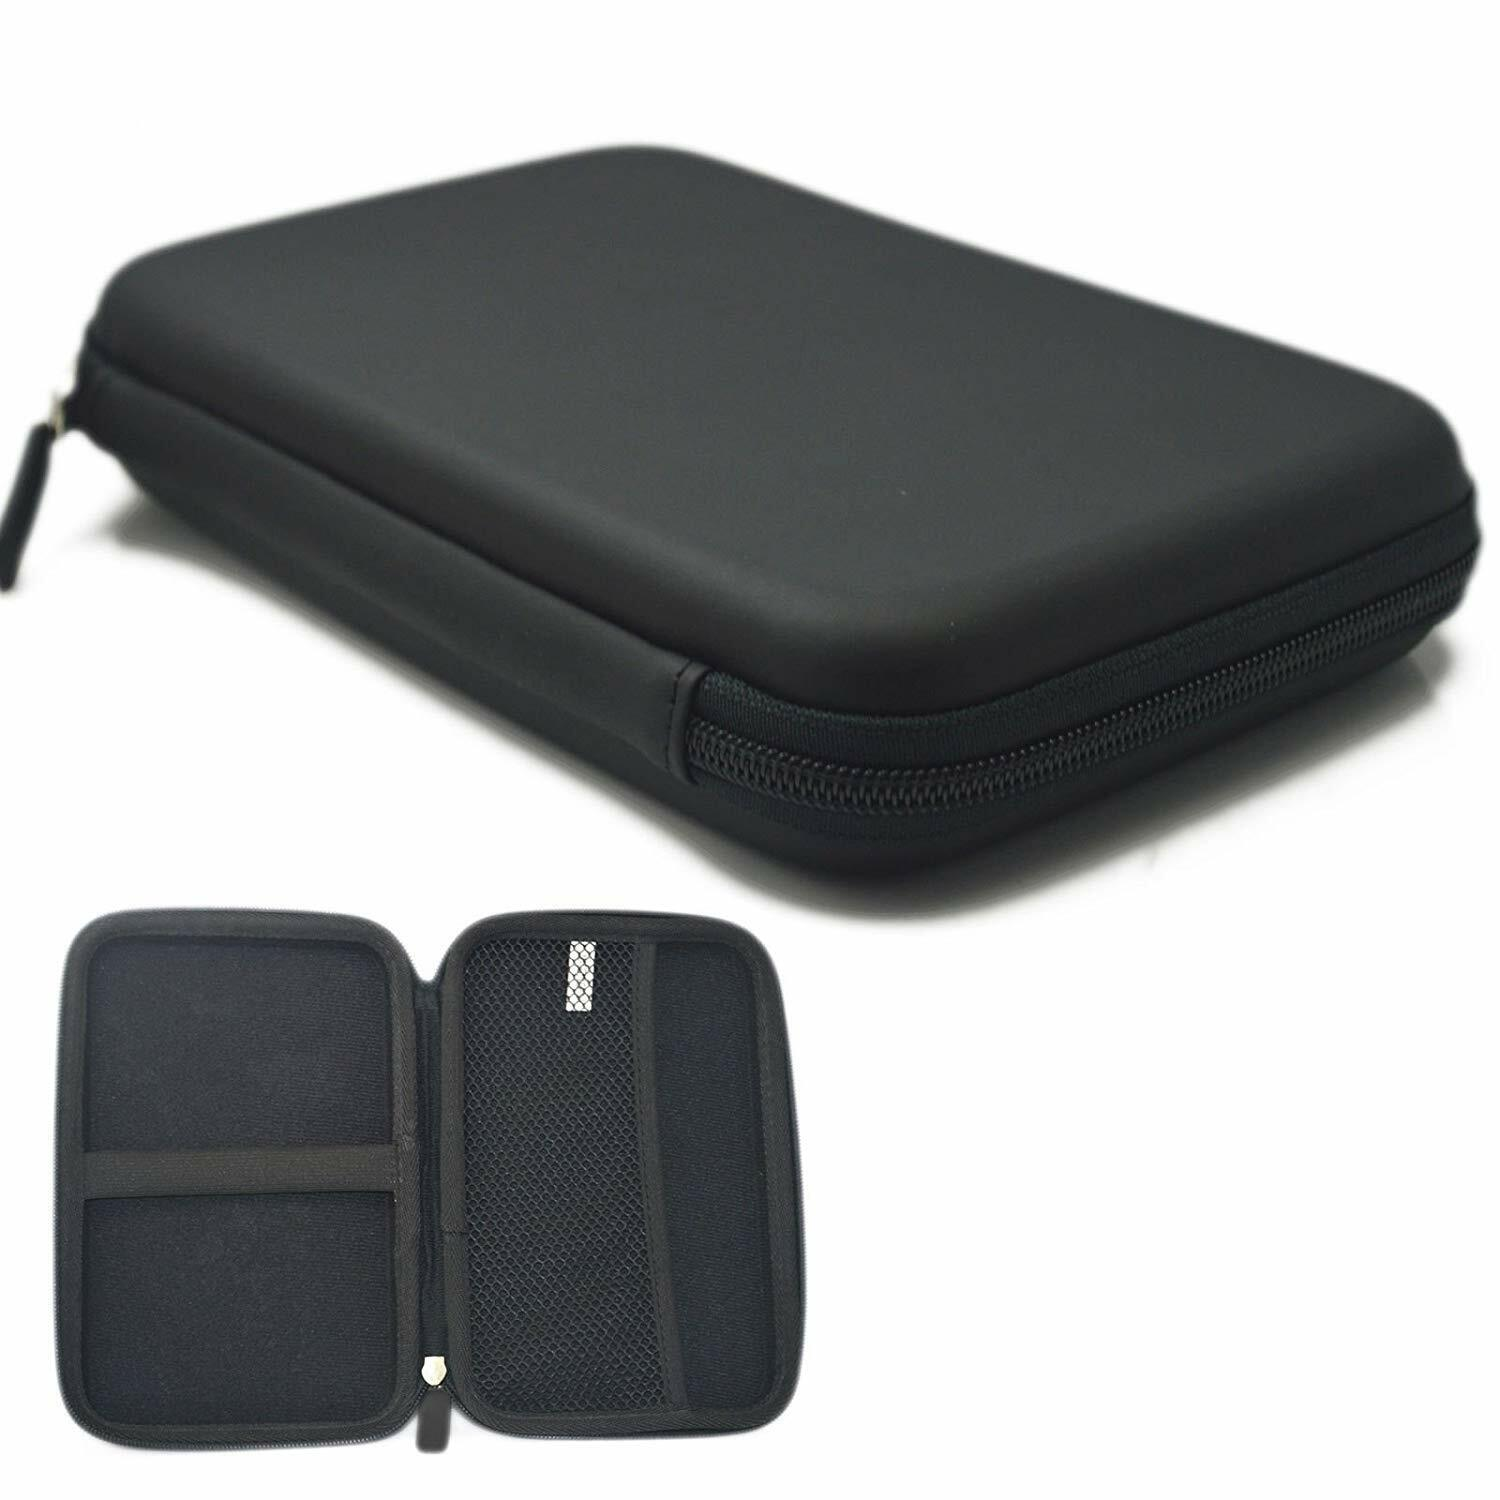 2.5″ External USB Hard Drive Disk HDD Carry Case Cover Pouch Bag For Laptop PC Computers/Tablets & Networking